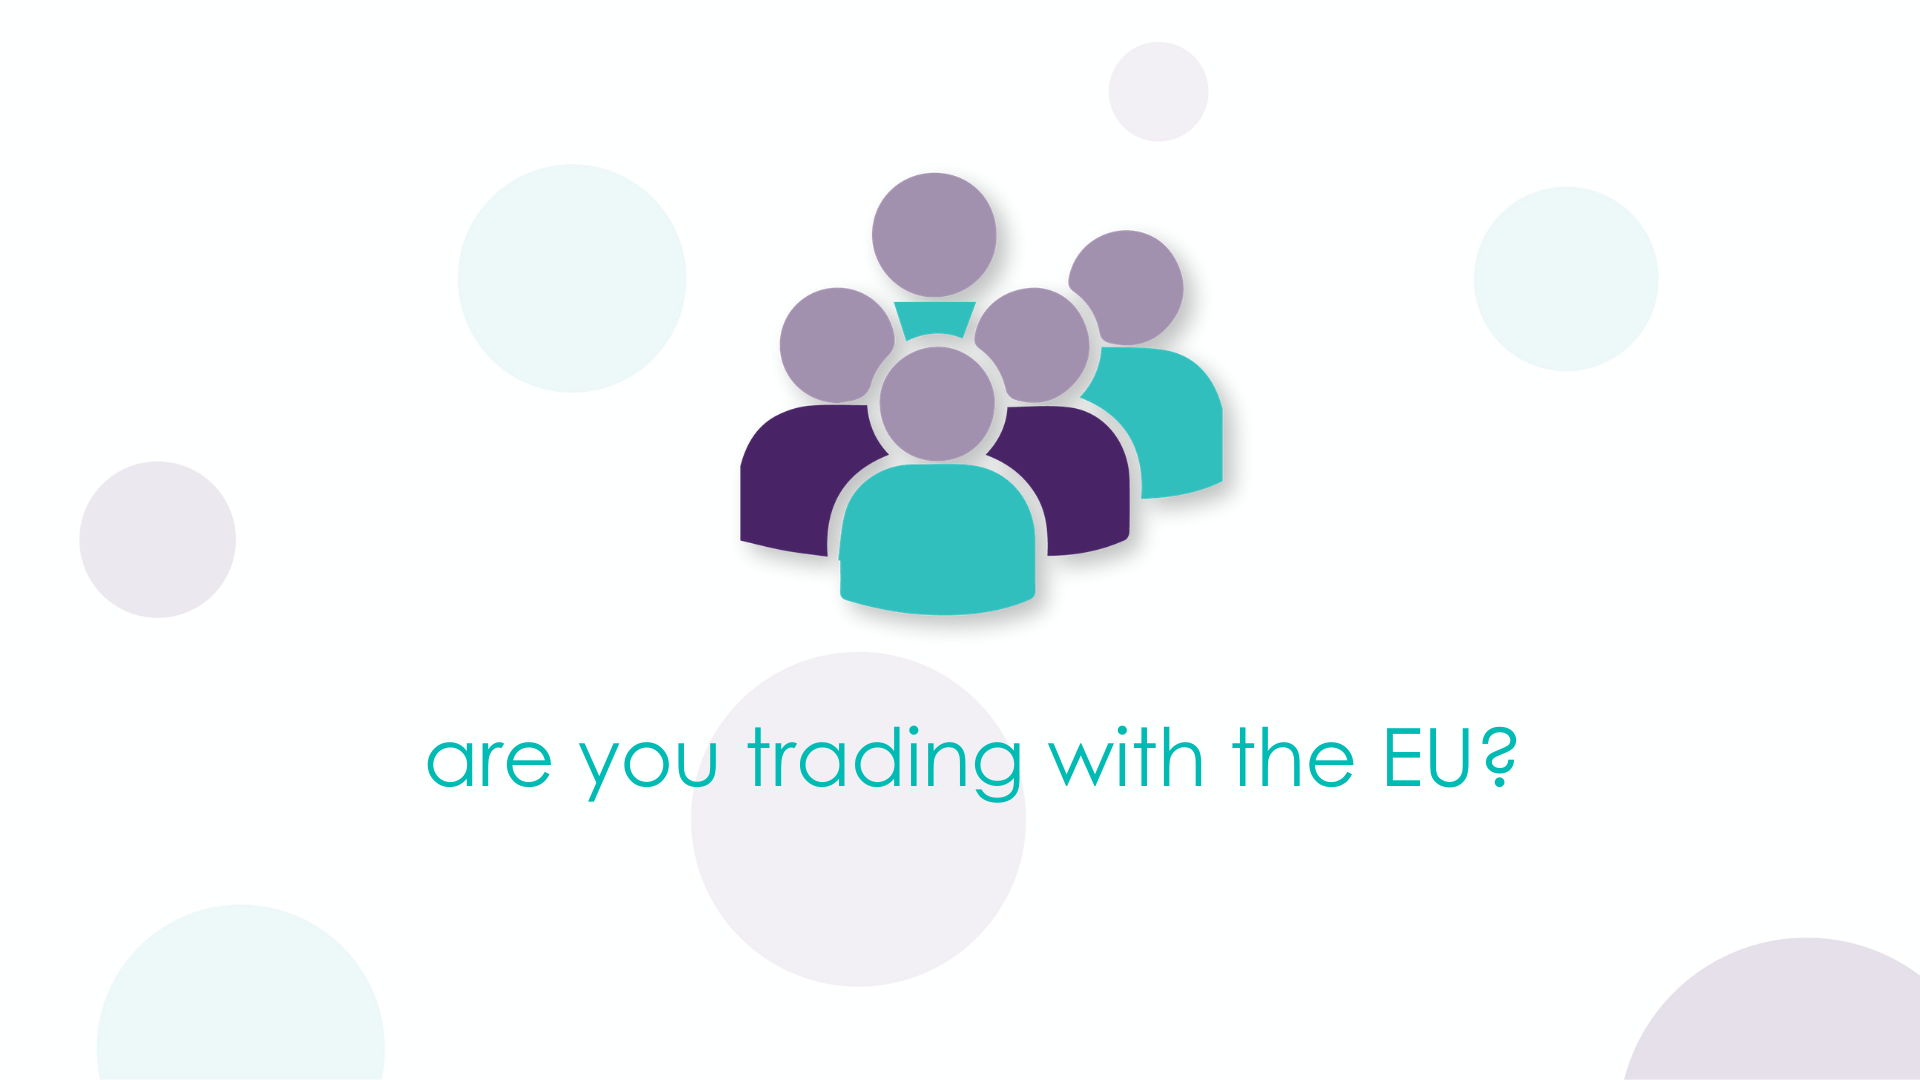 are you trading with the EU?